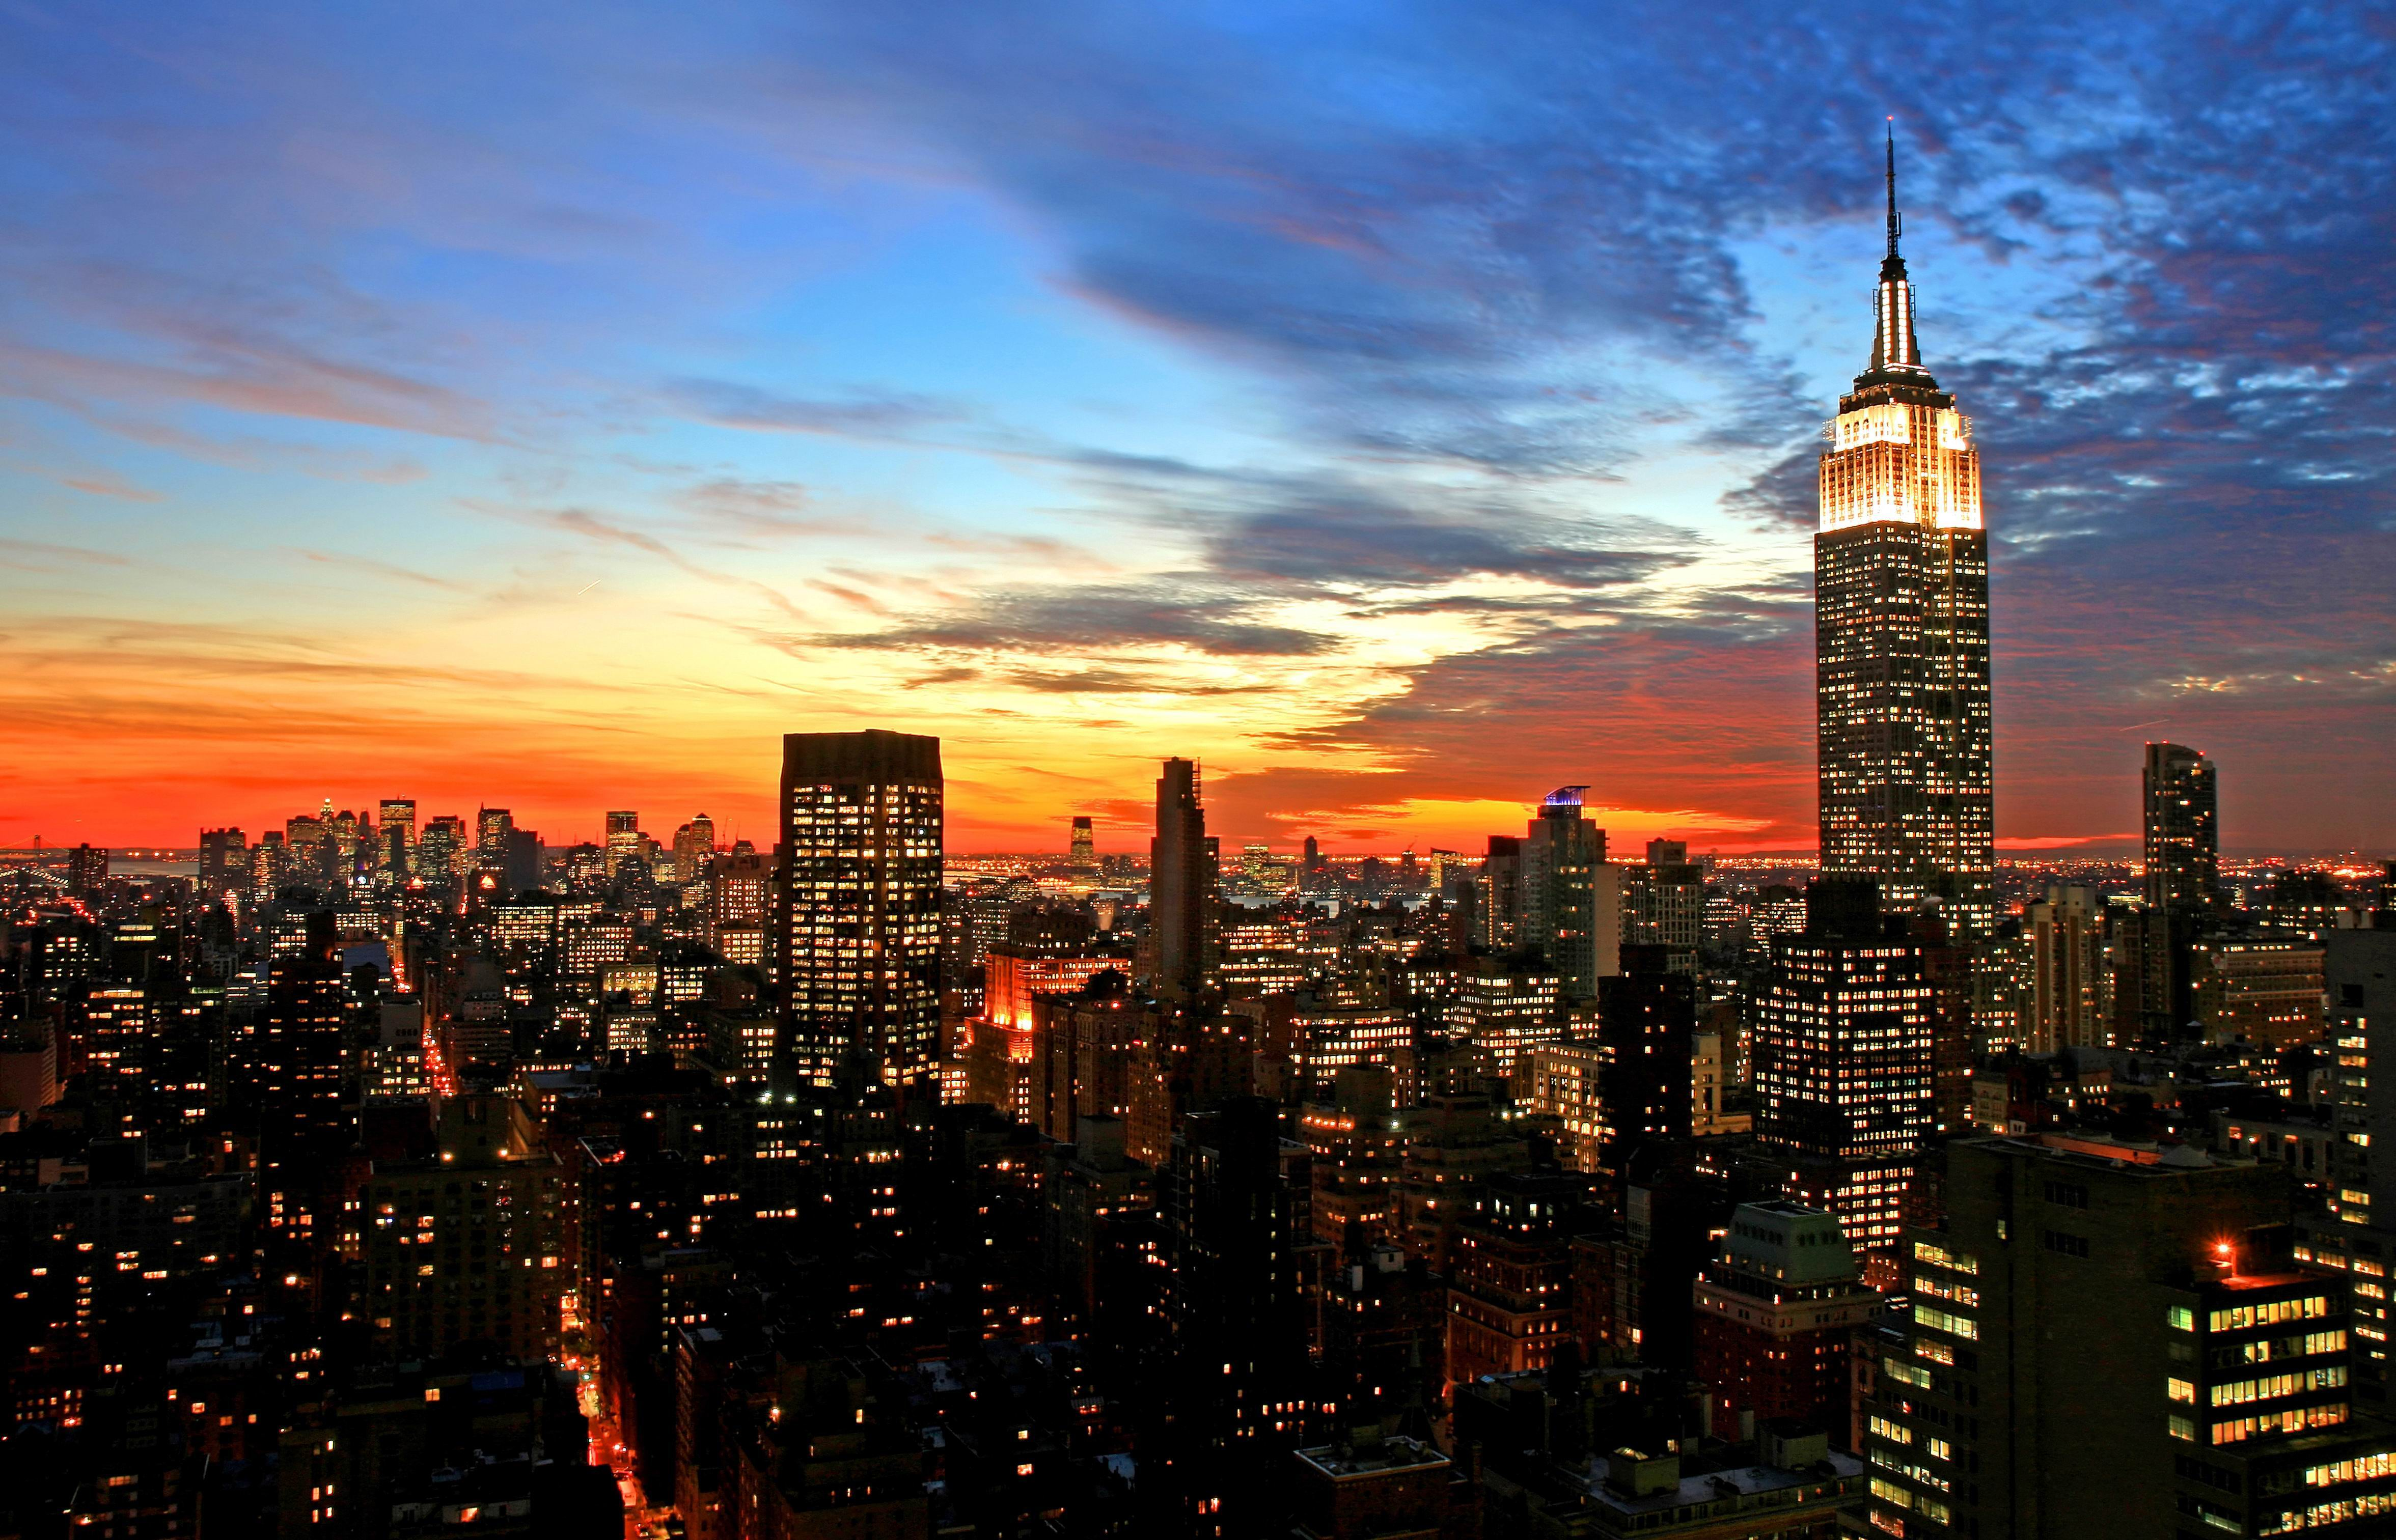 Description Download New York City Skyline Ultra Hd Widescreen higher 4705x3025